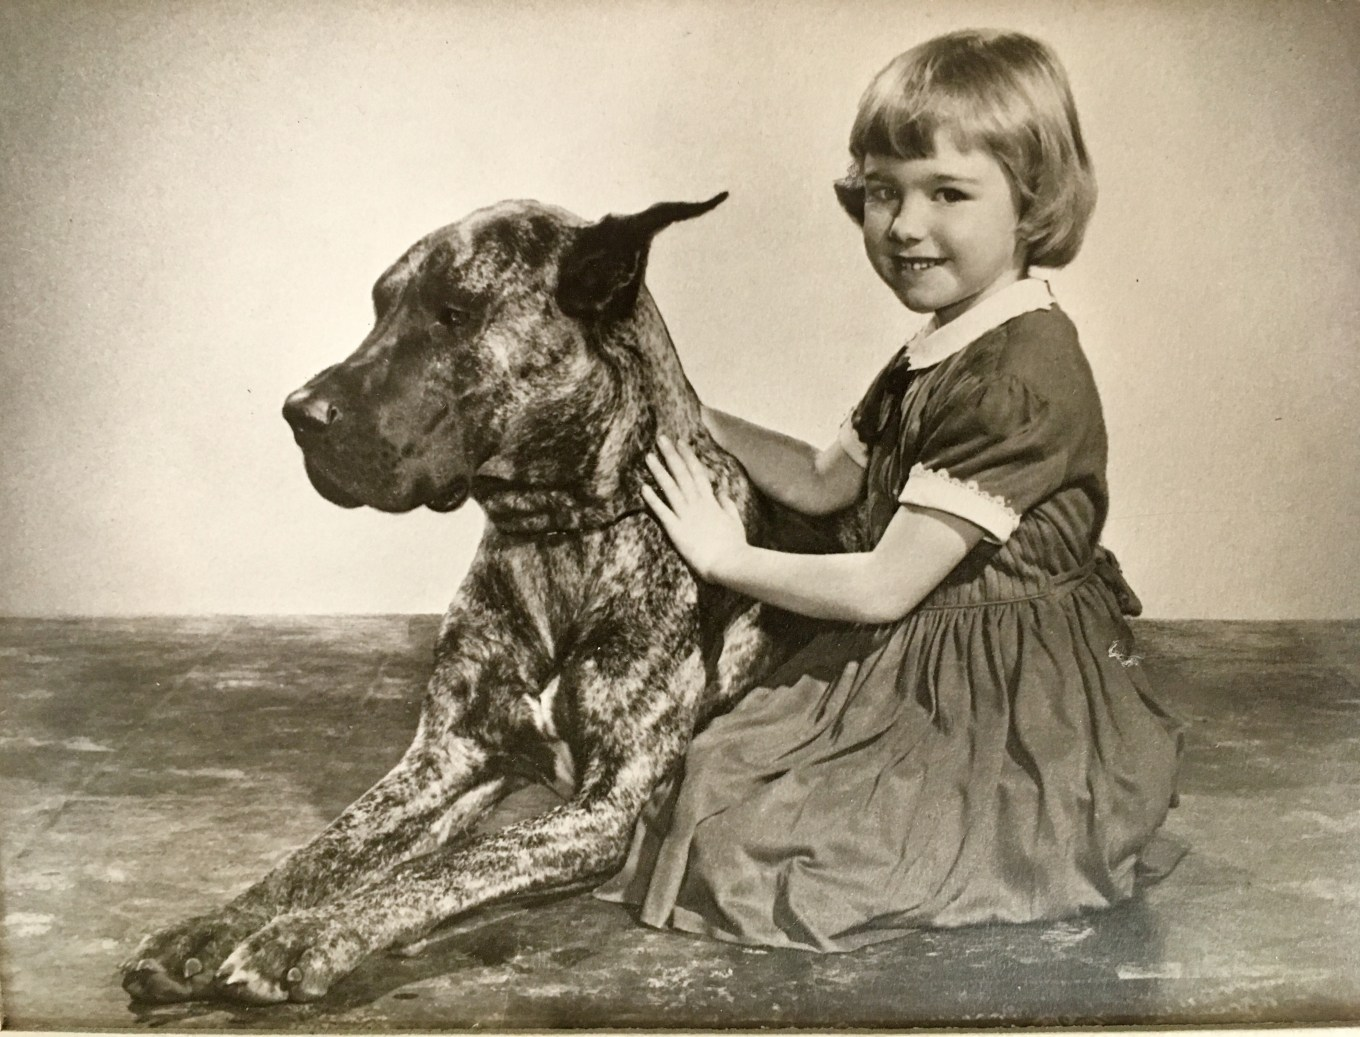 Alouette with Great Dane